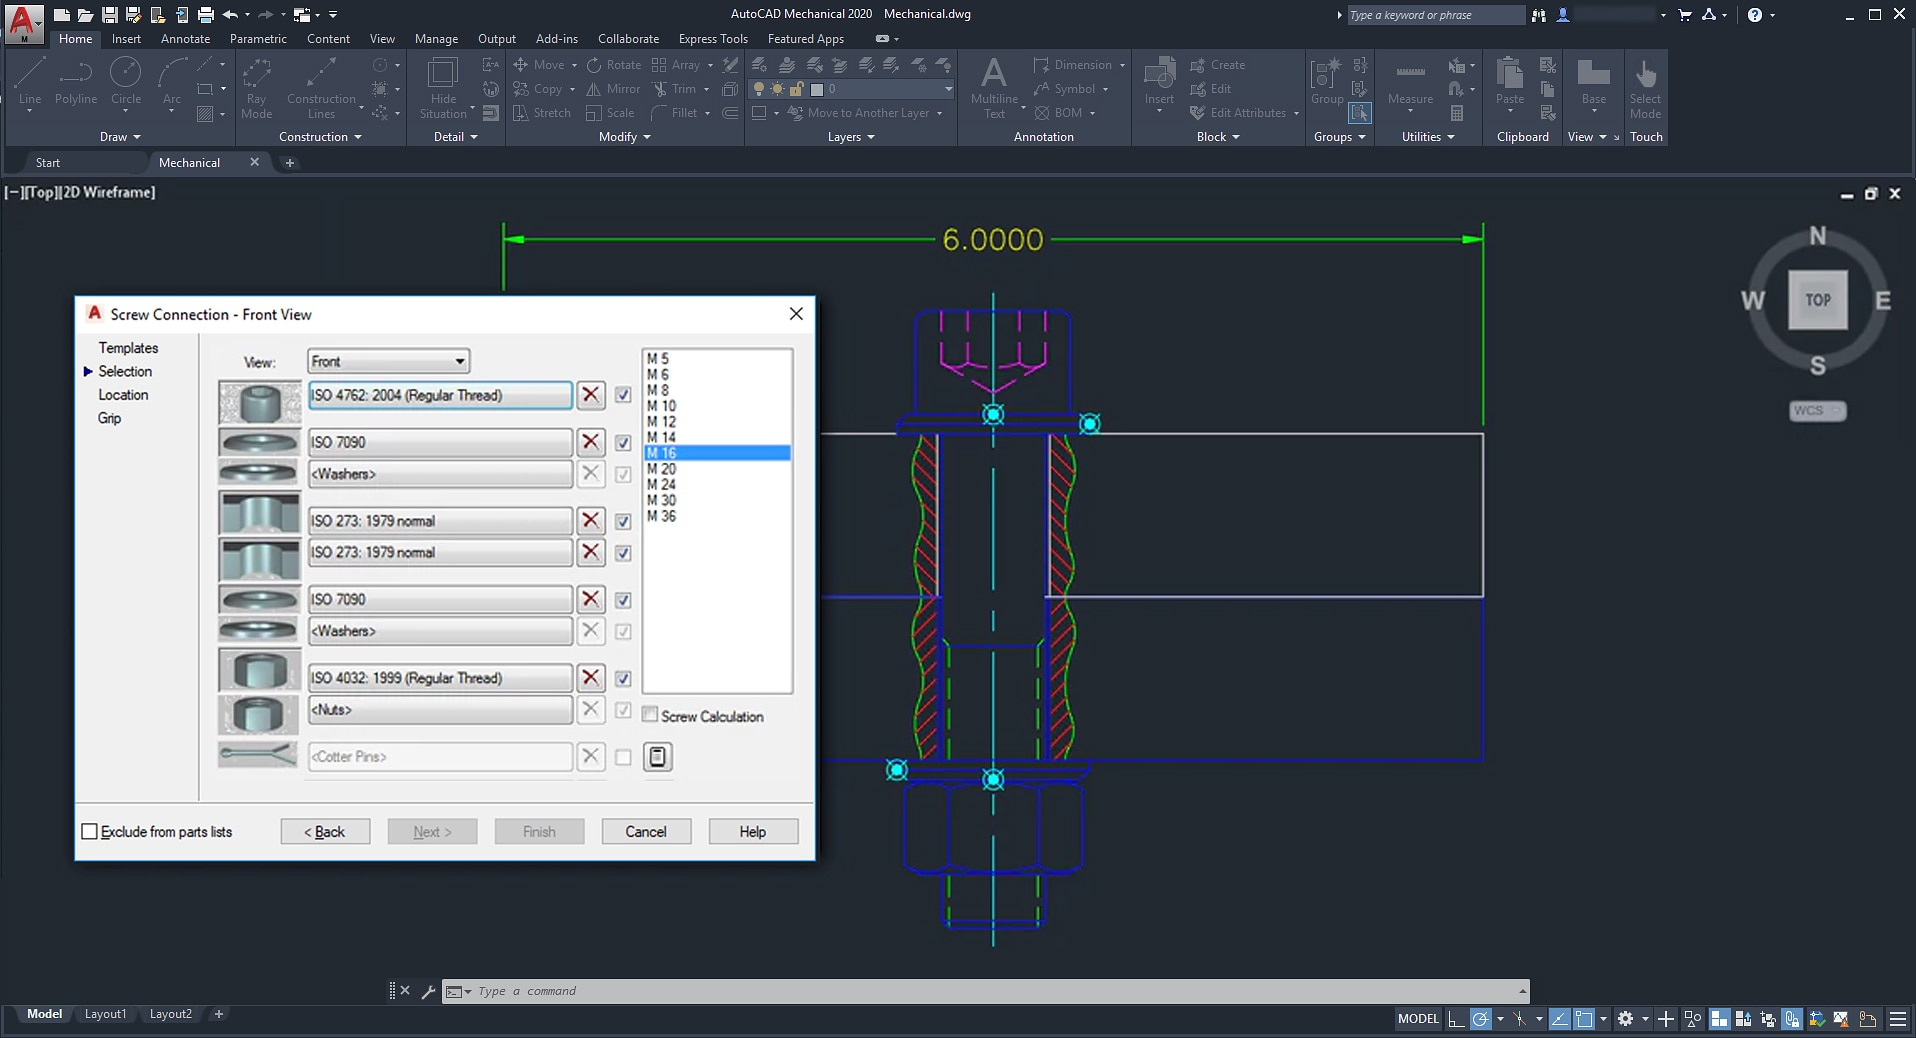 AutoCAD Mechanical Toolset | Mechanical Design Software